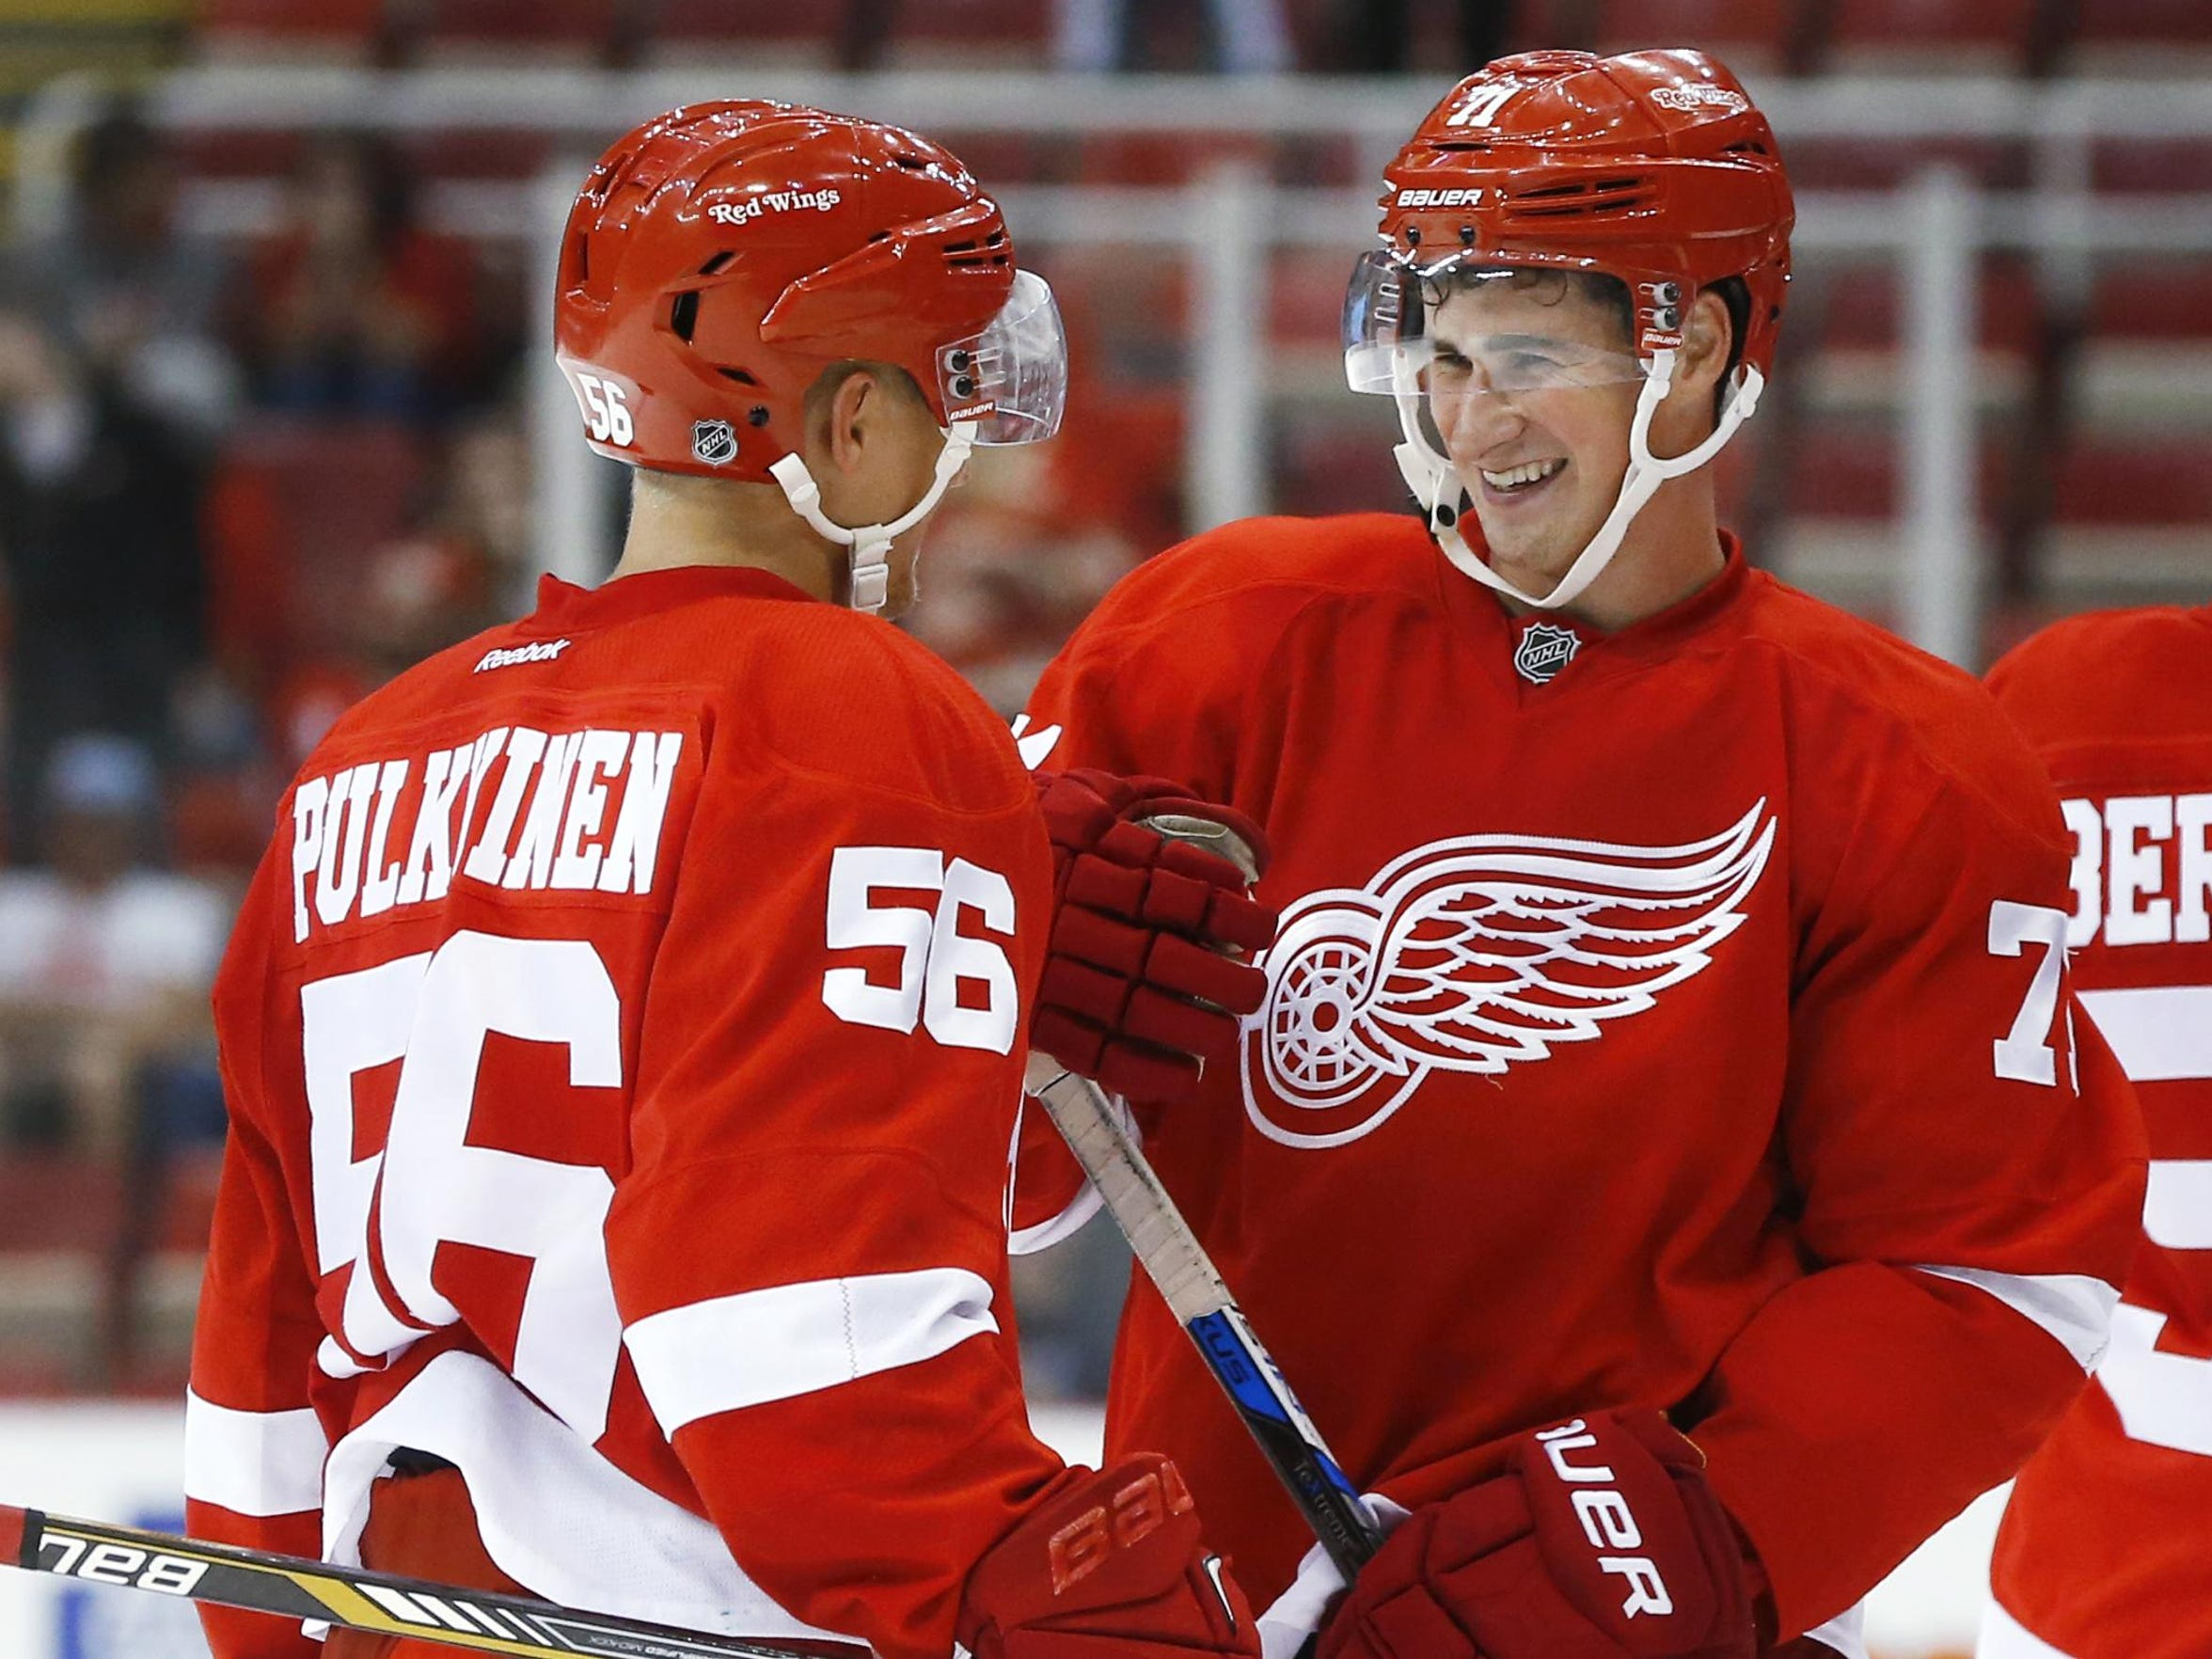 Red Wings left wing Teemu Pulkkinen and center Dylan